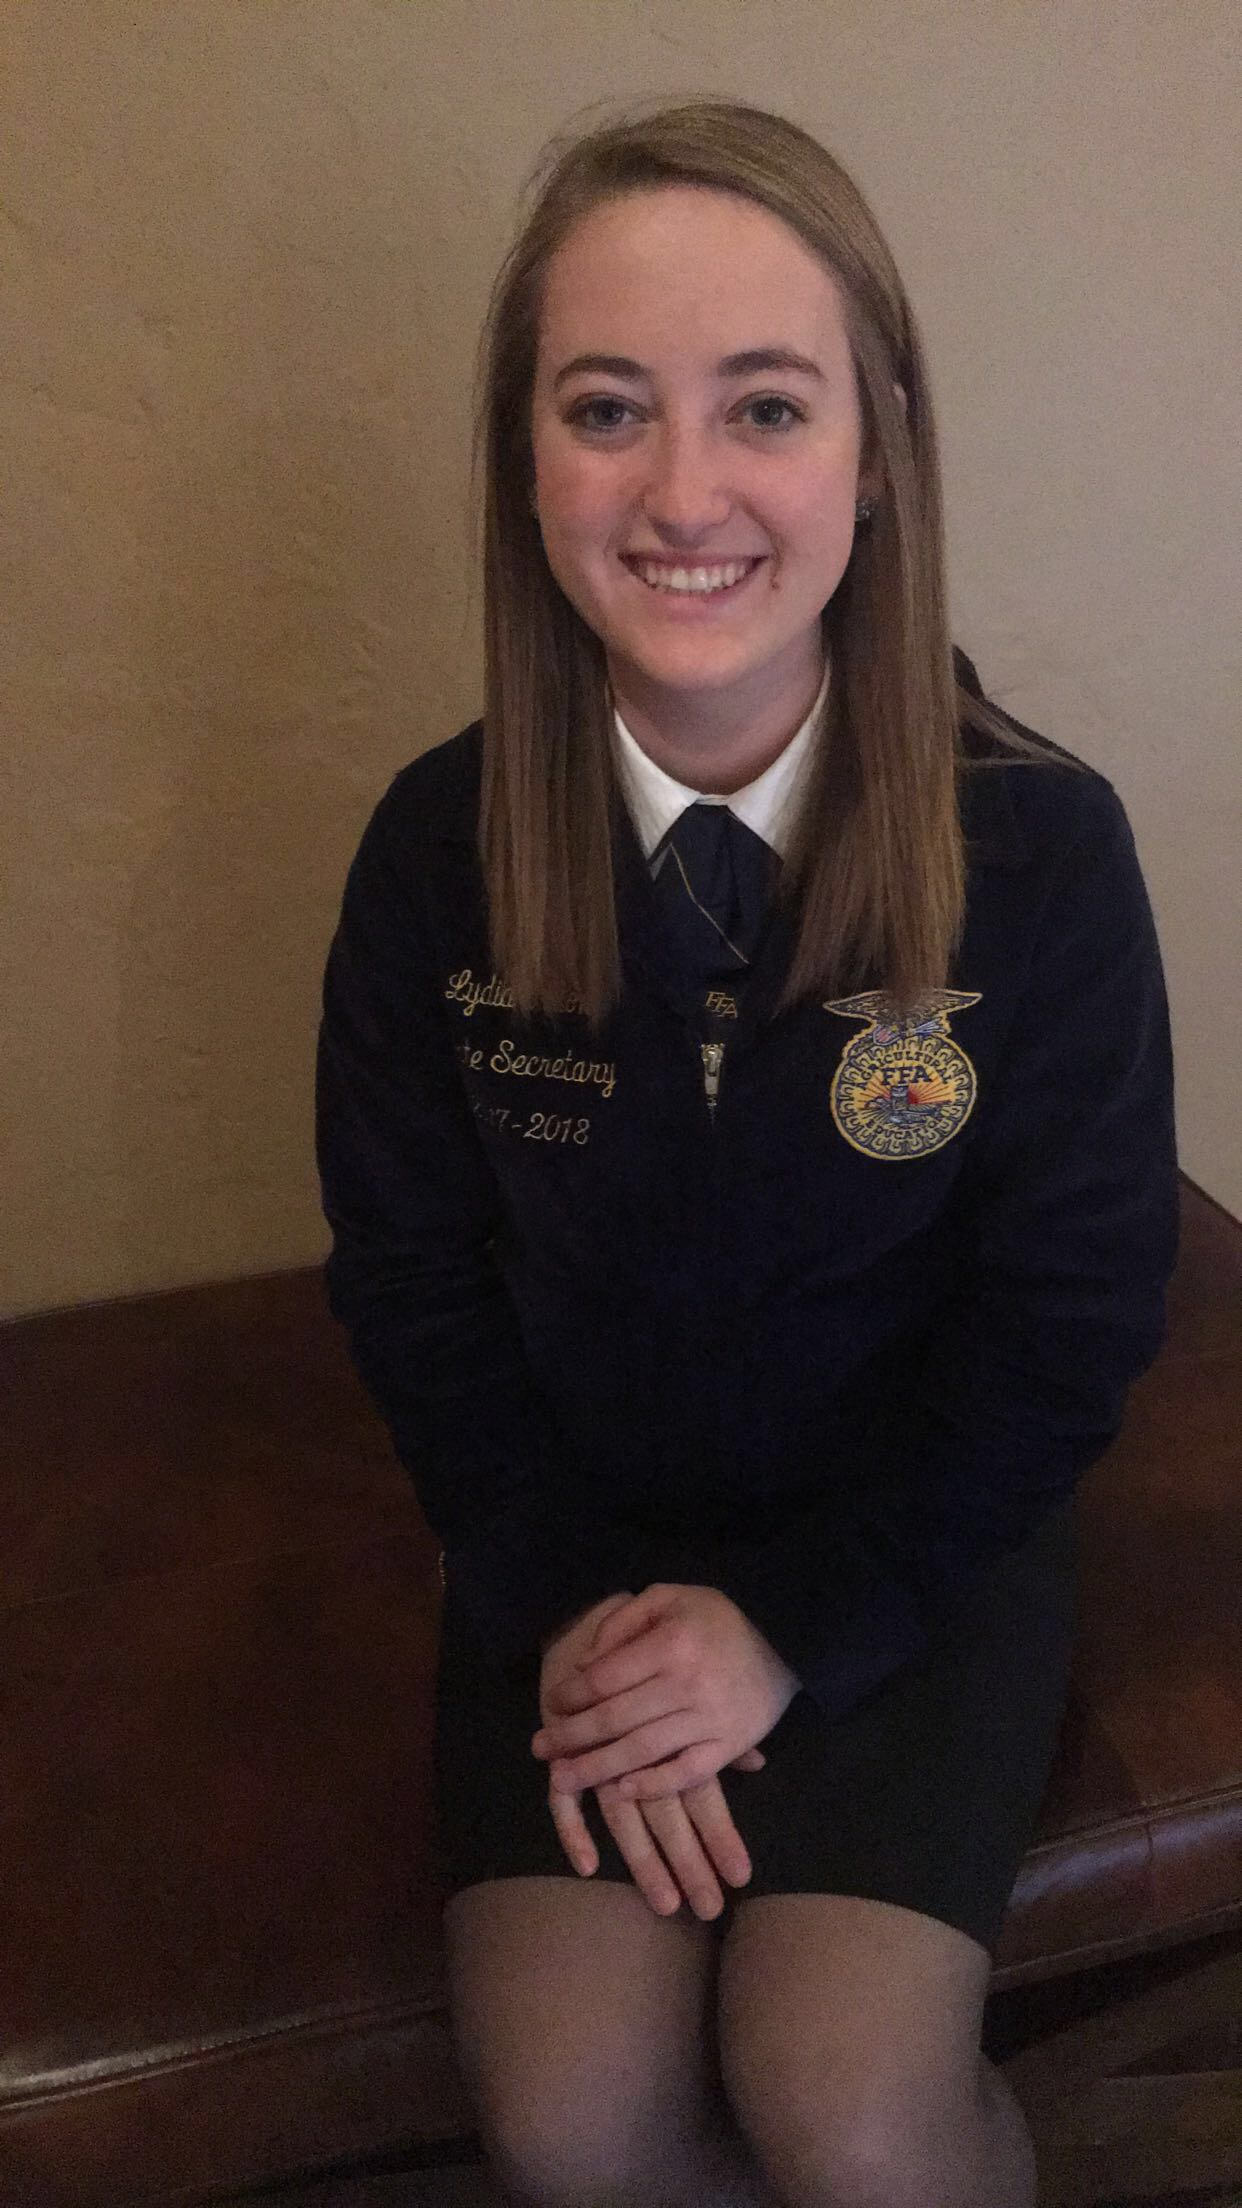 Meet Your 2017-18 State Officer: Lydia Vinton